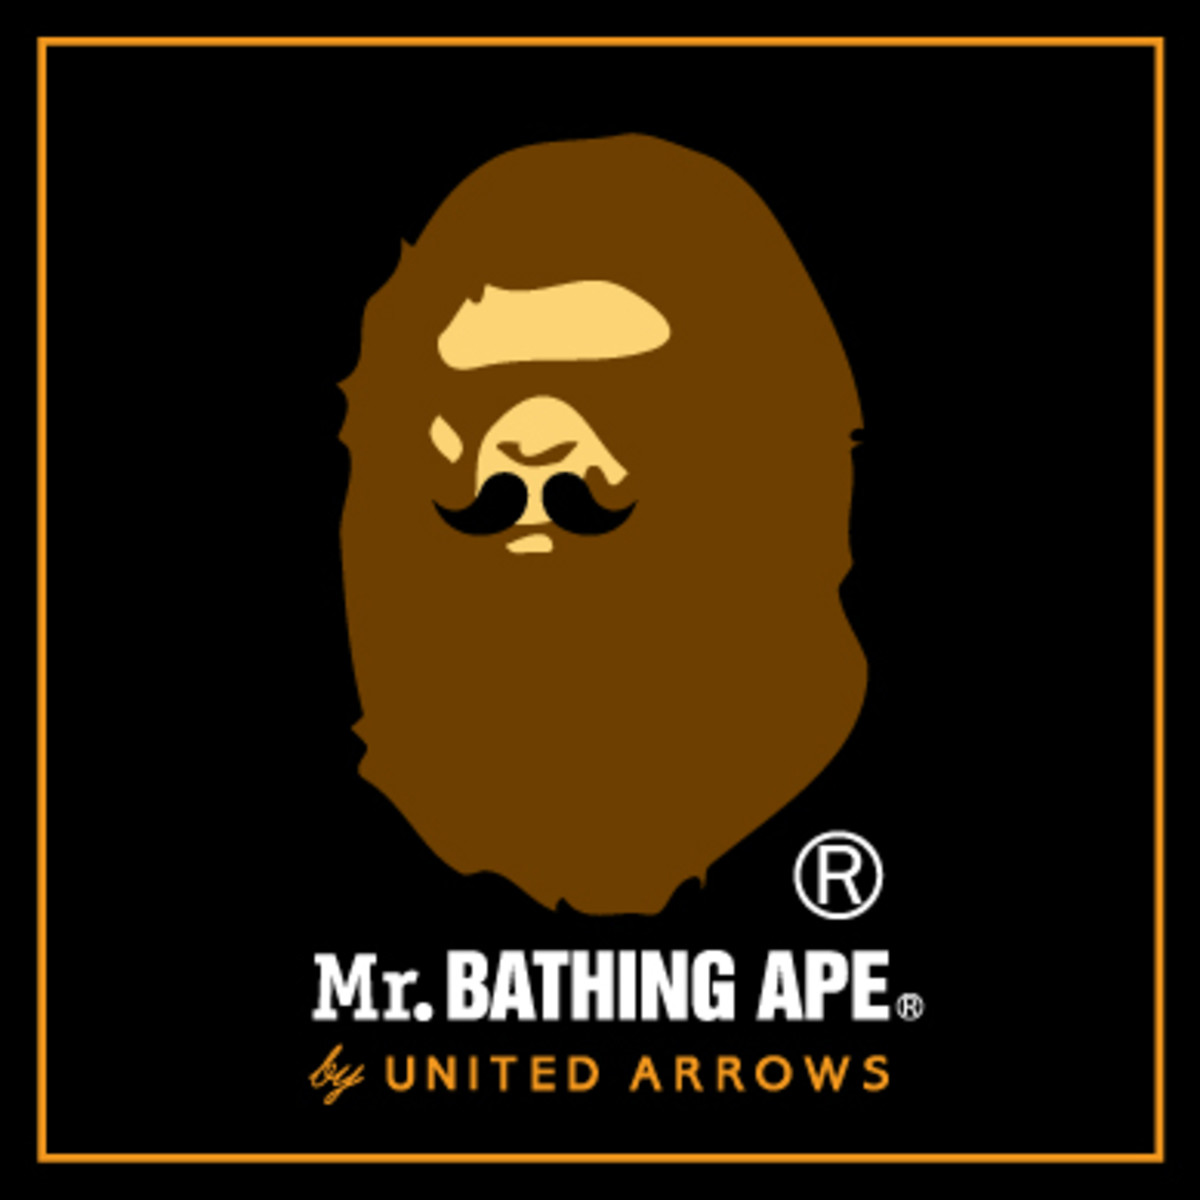 united_arrows_bape_1